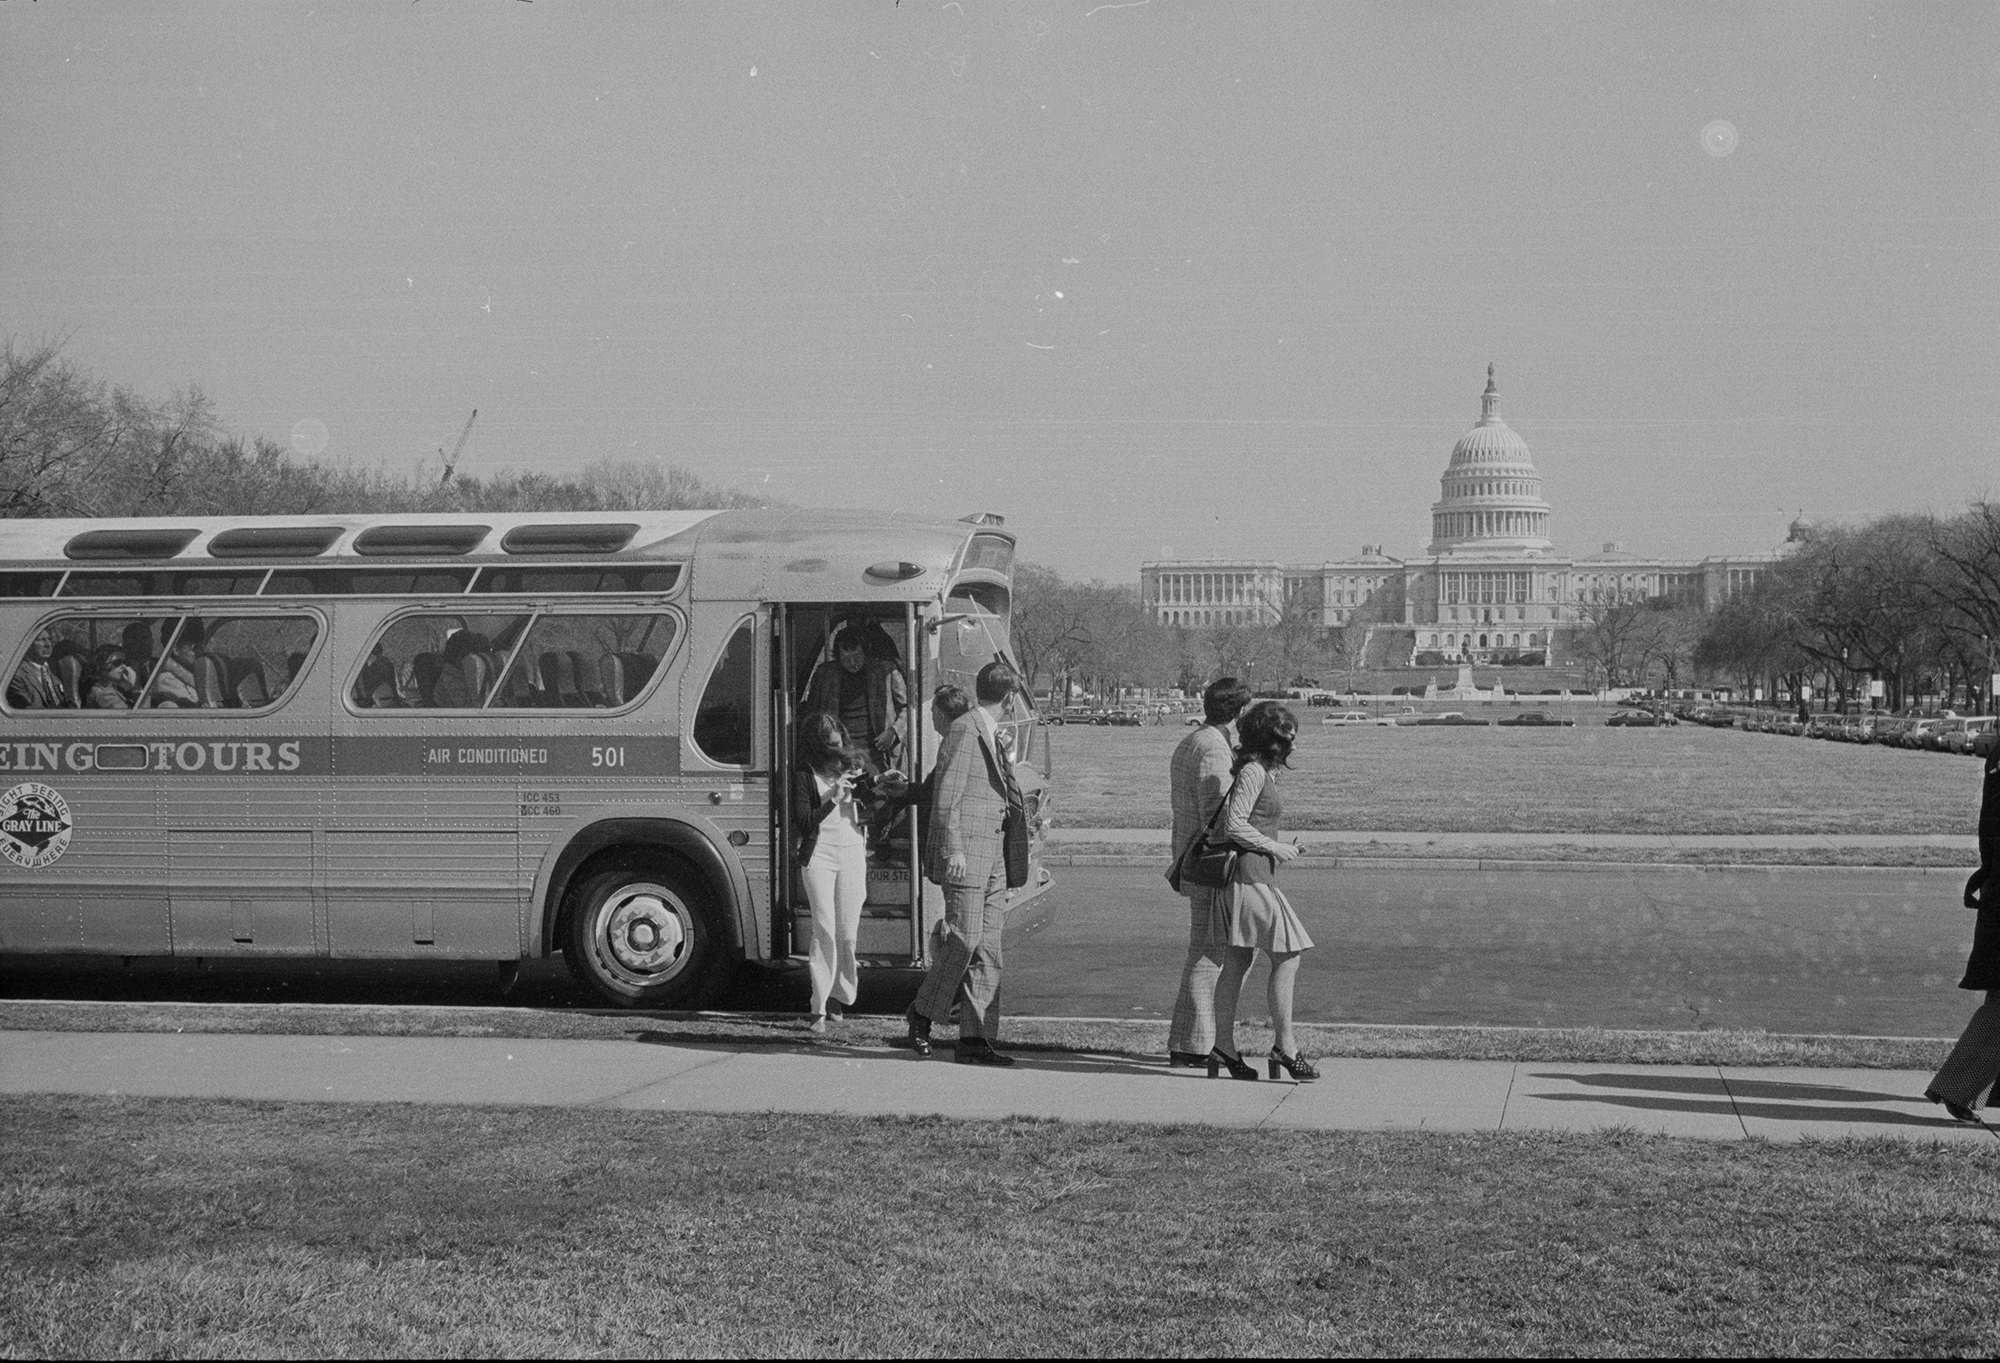 a group of people get off a bus in front of capitol hill